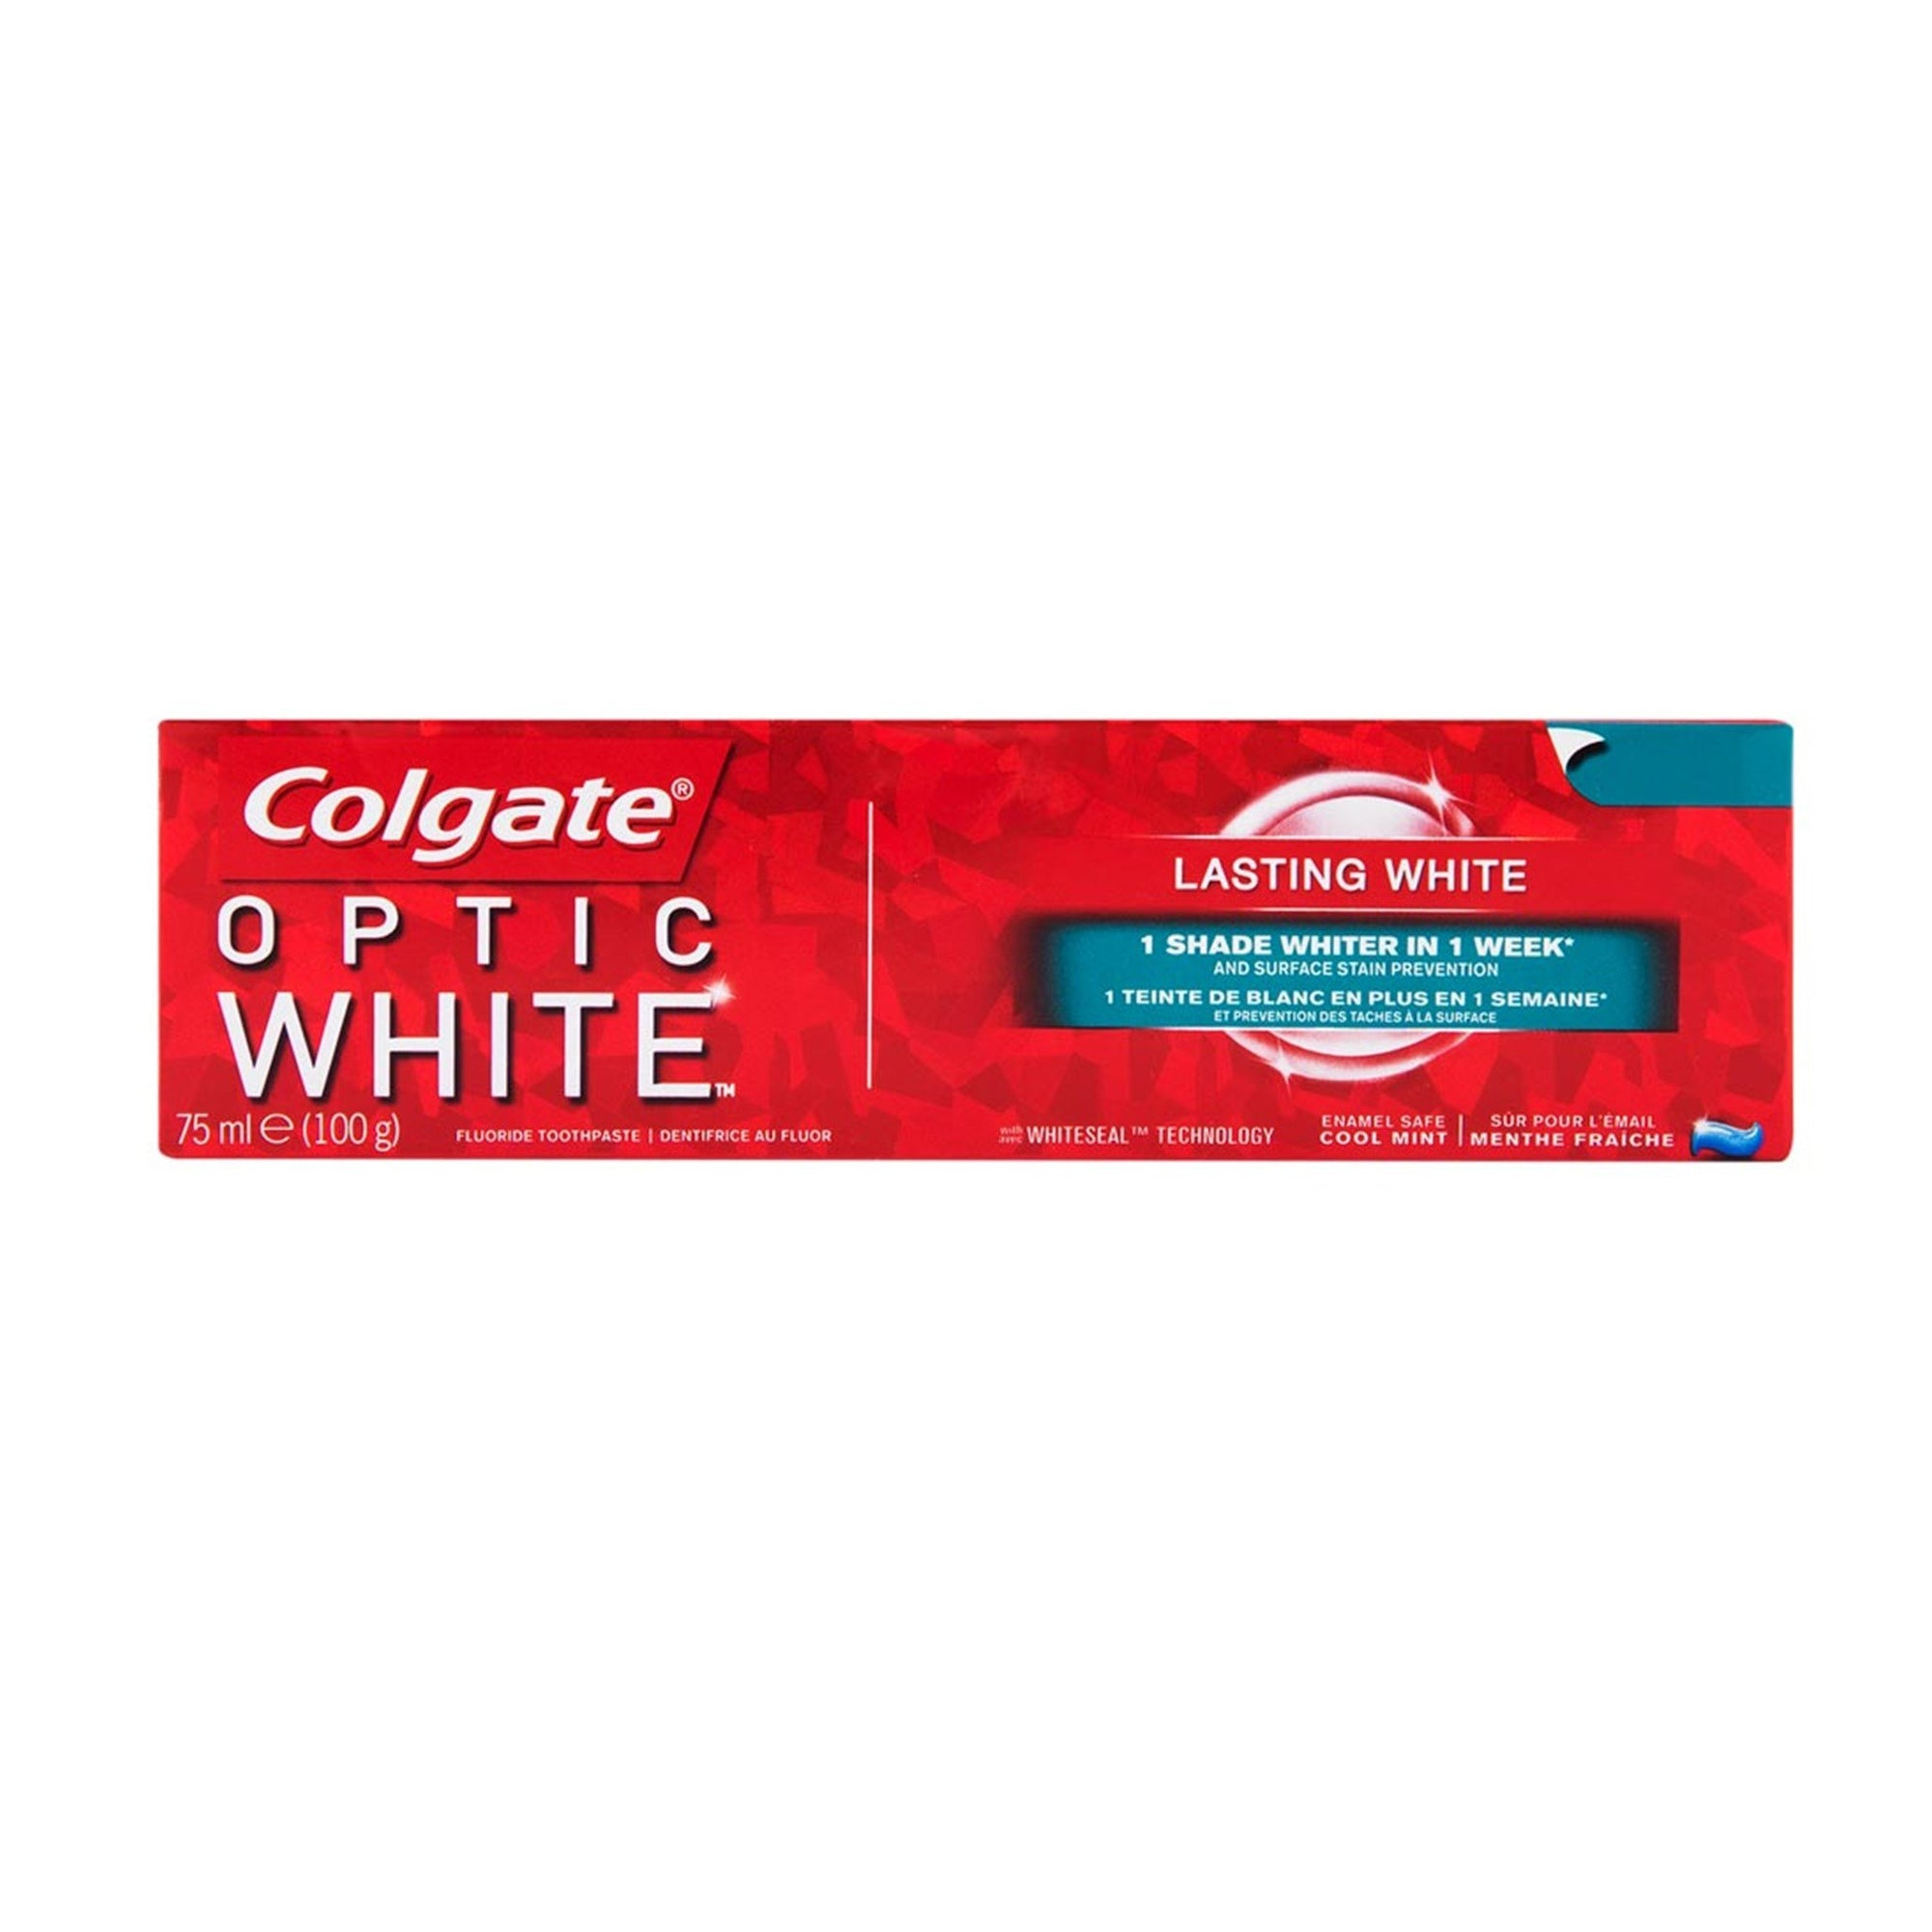 Colgate Optic White Lasting White 100g